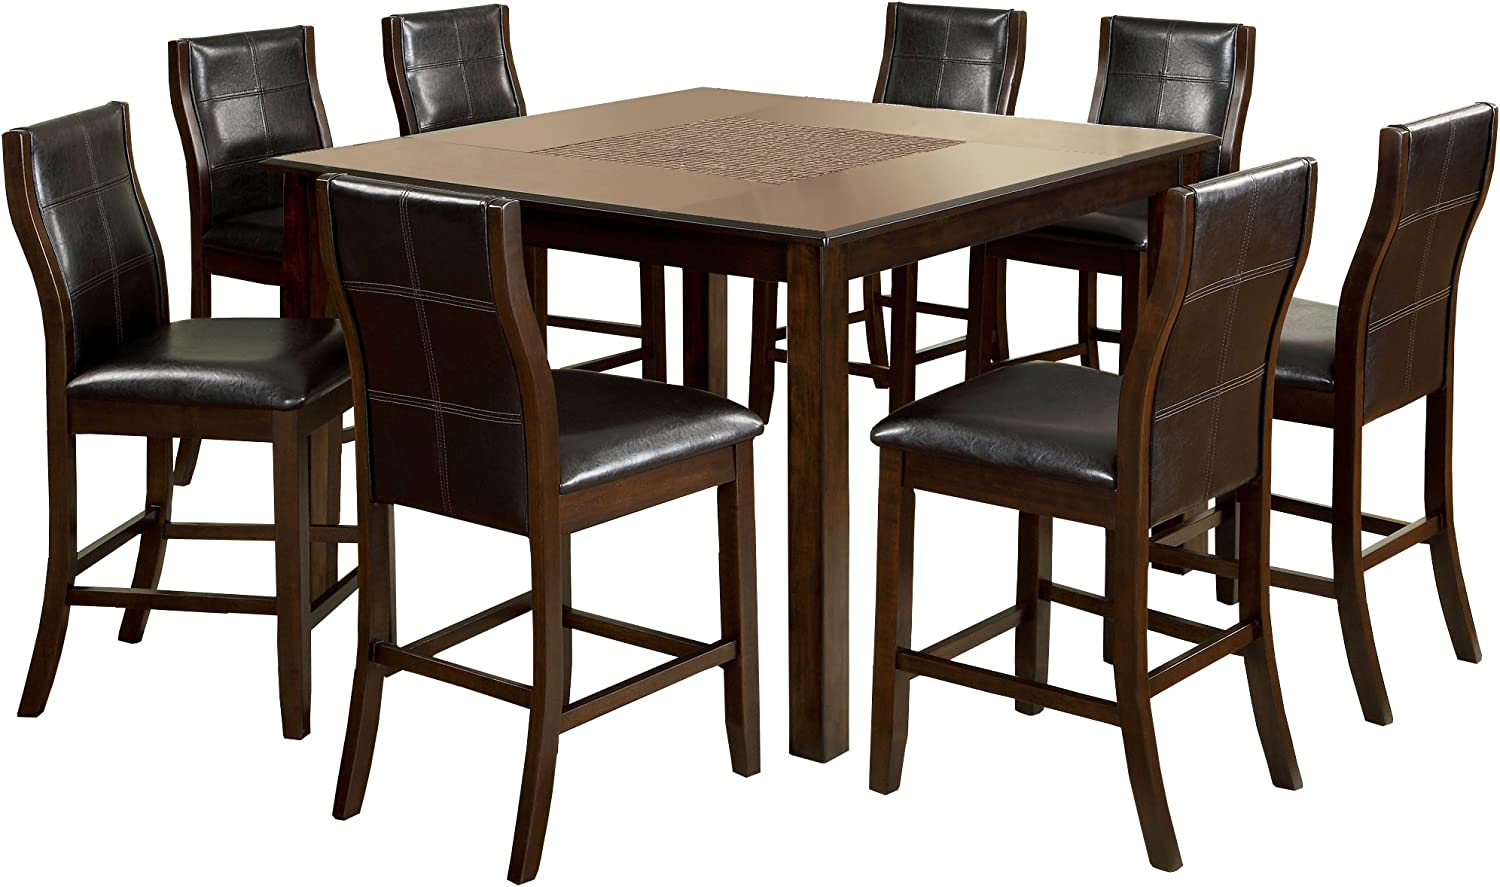 Furniture of America Baine Dining Table Set, Brown Cherry